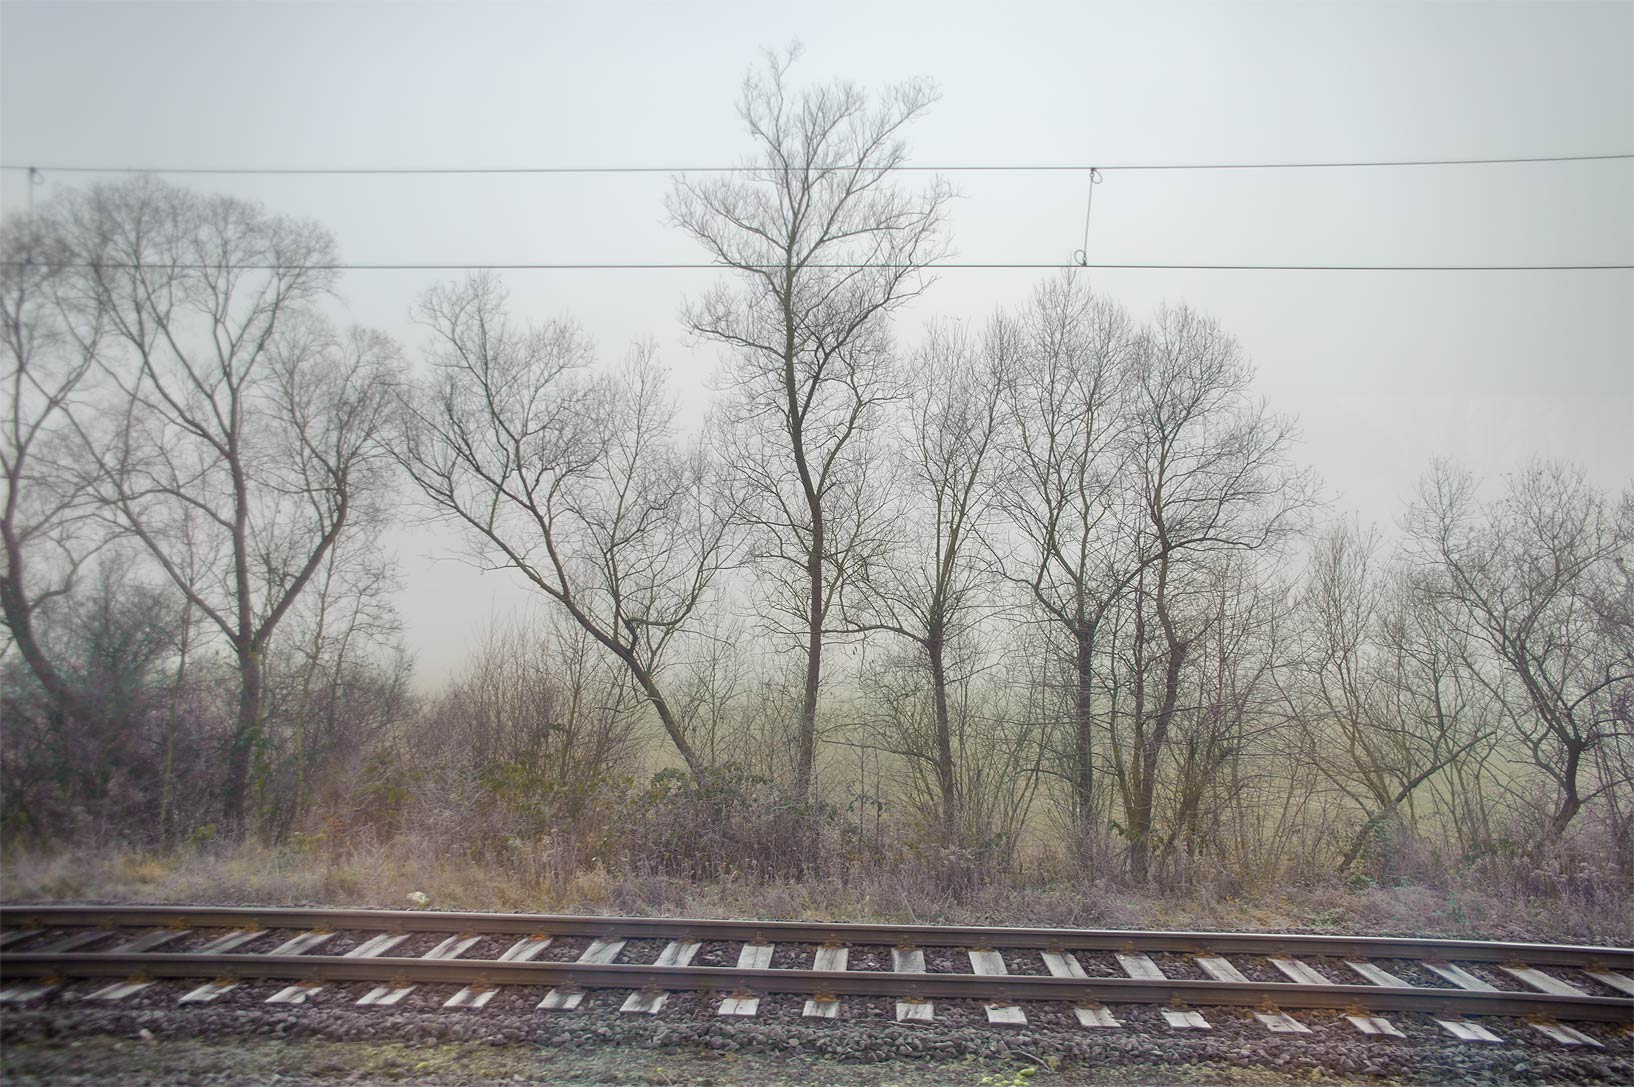 View from a train from Frankfurt to Gotha. Germany